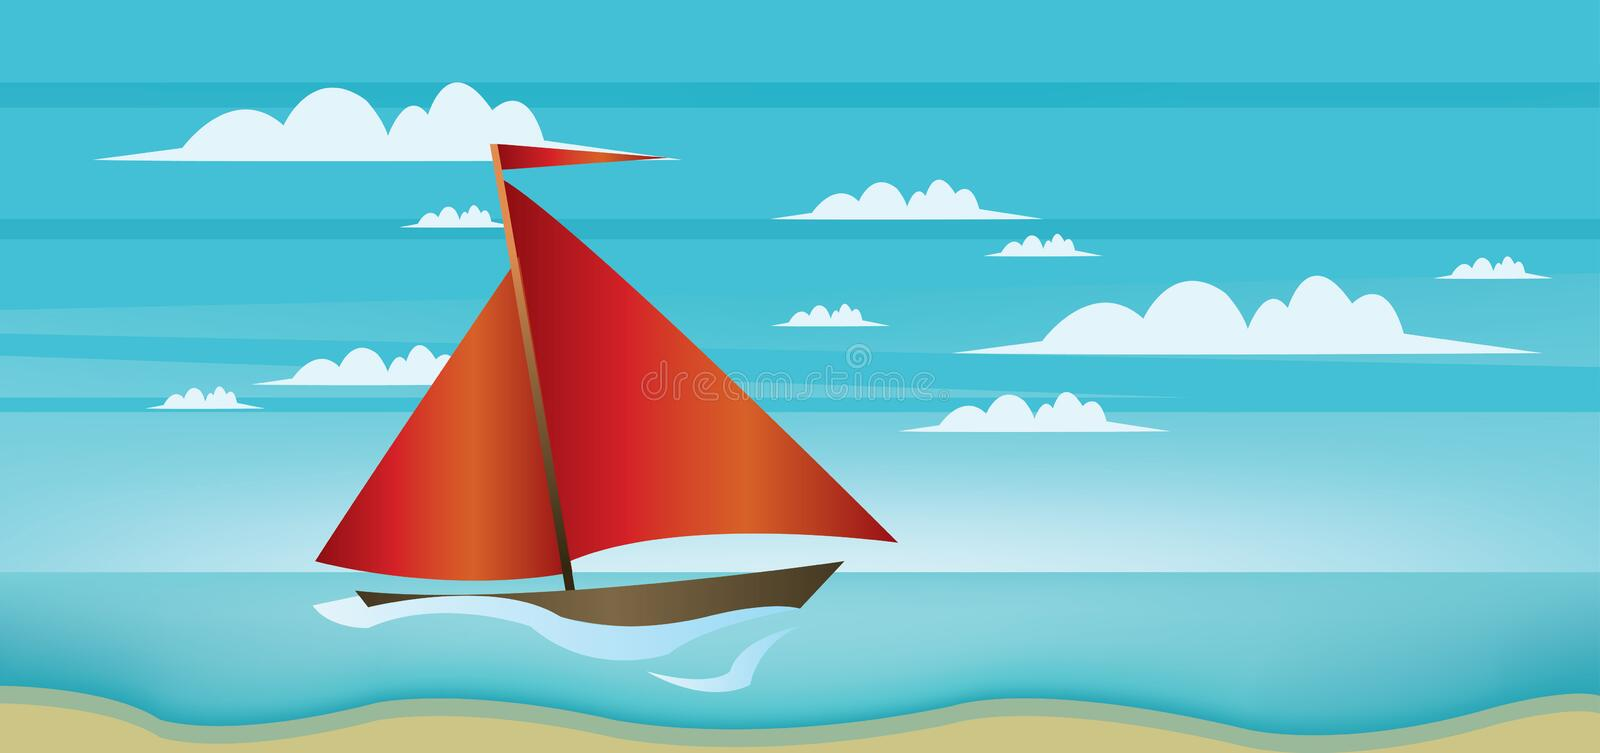 Abstract landscape with red boat, blue sea, white clouds and seashore. Digital vector image vector illustration